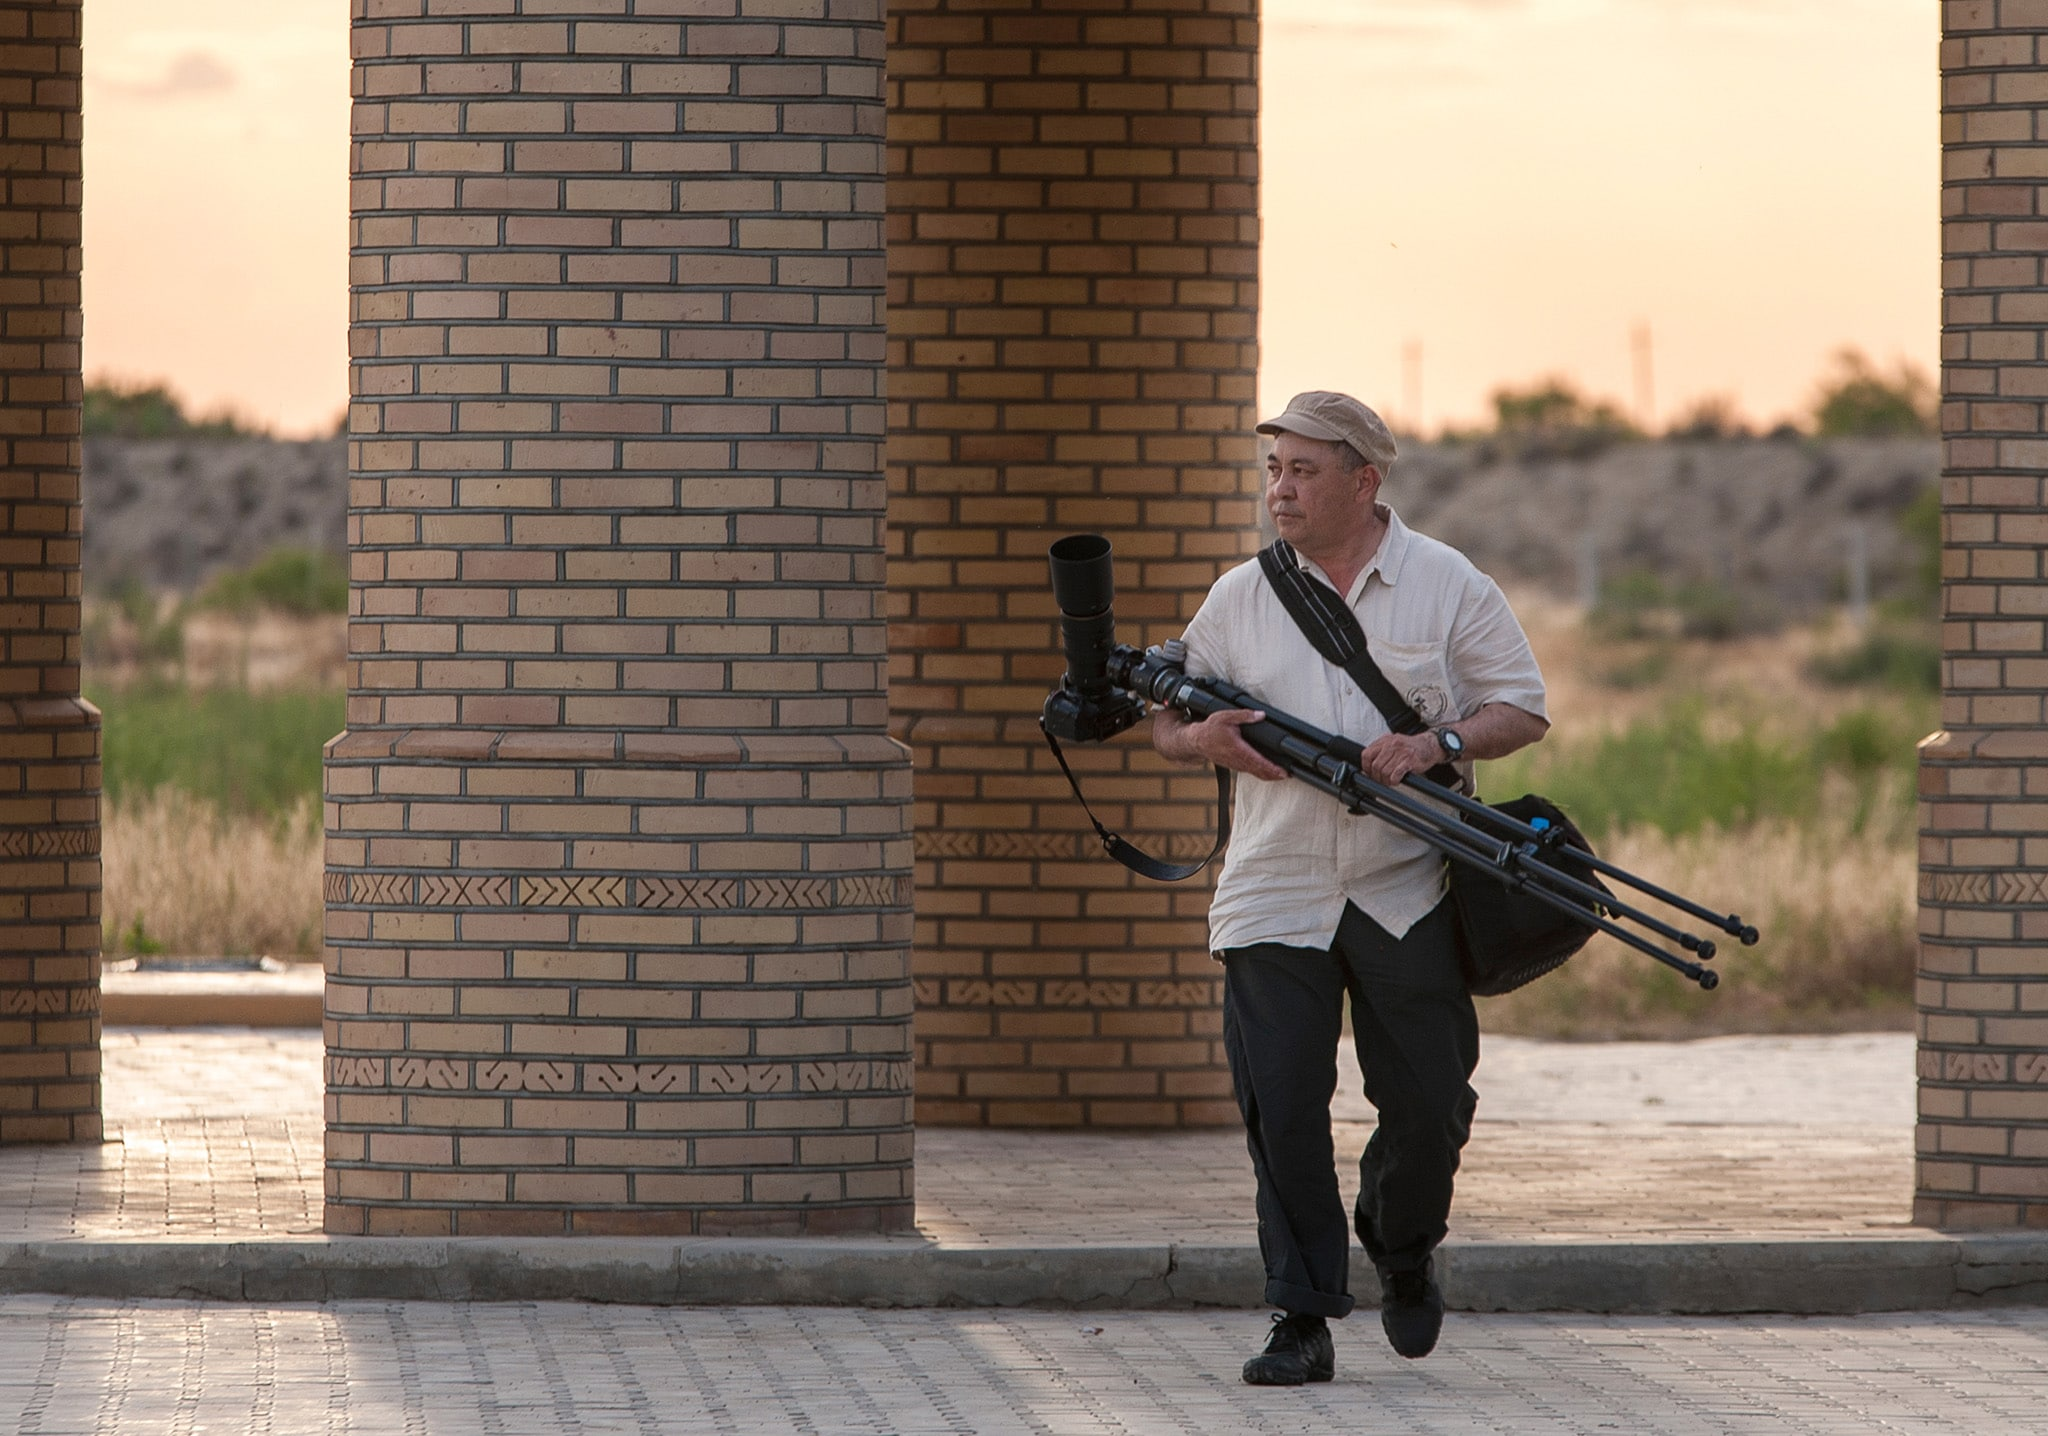 Info Shymkent - National Geographic Photographer Yerbolat Shadrakhov from Kazakhstan at work